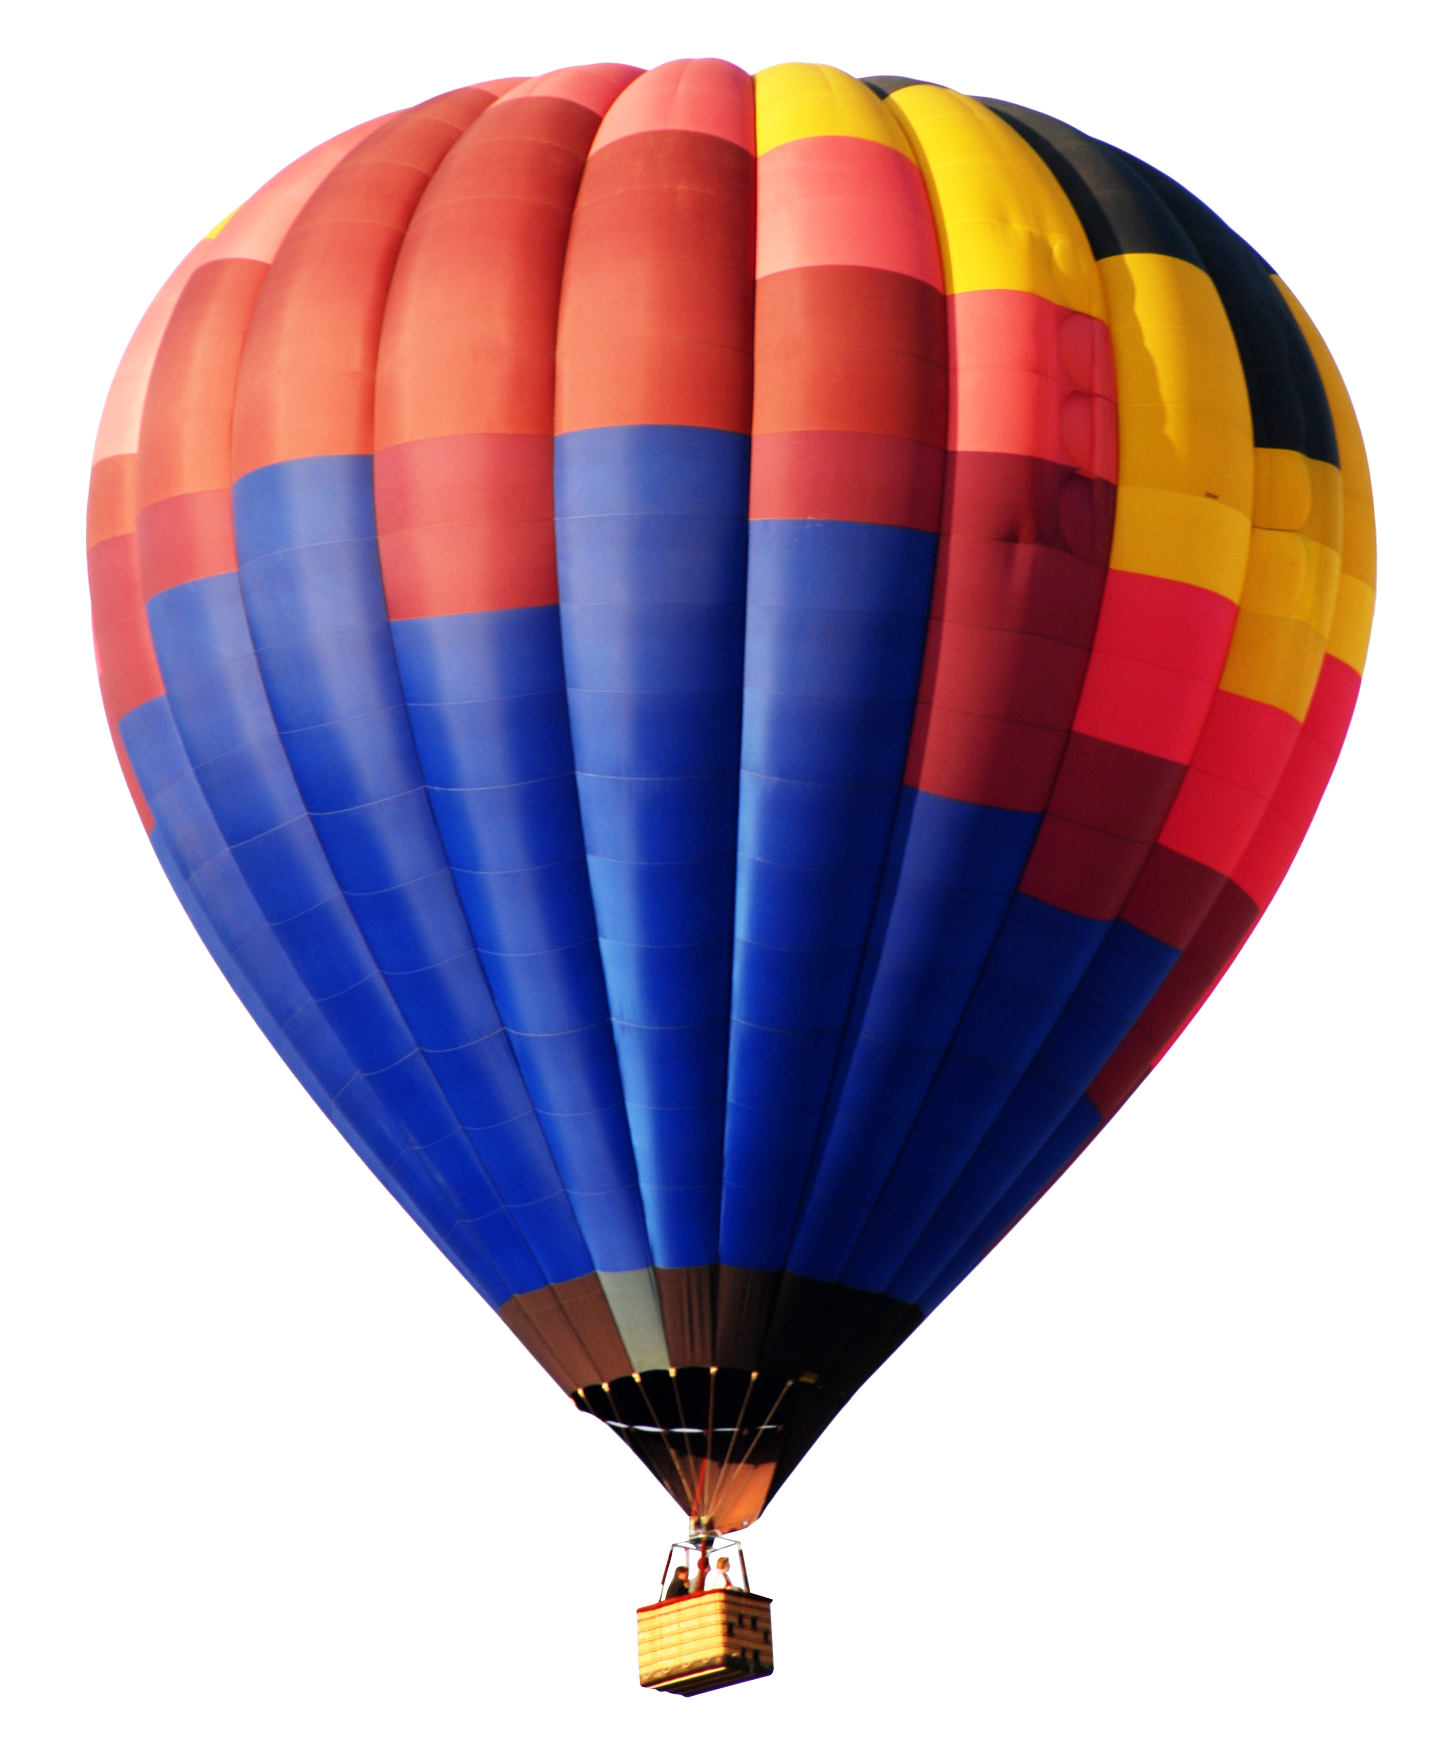 Download Free Air Balloon Images Png image #46757